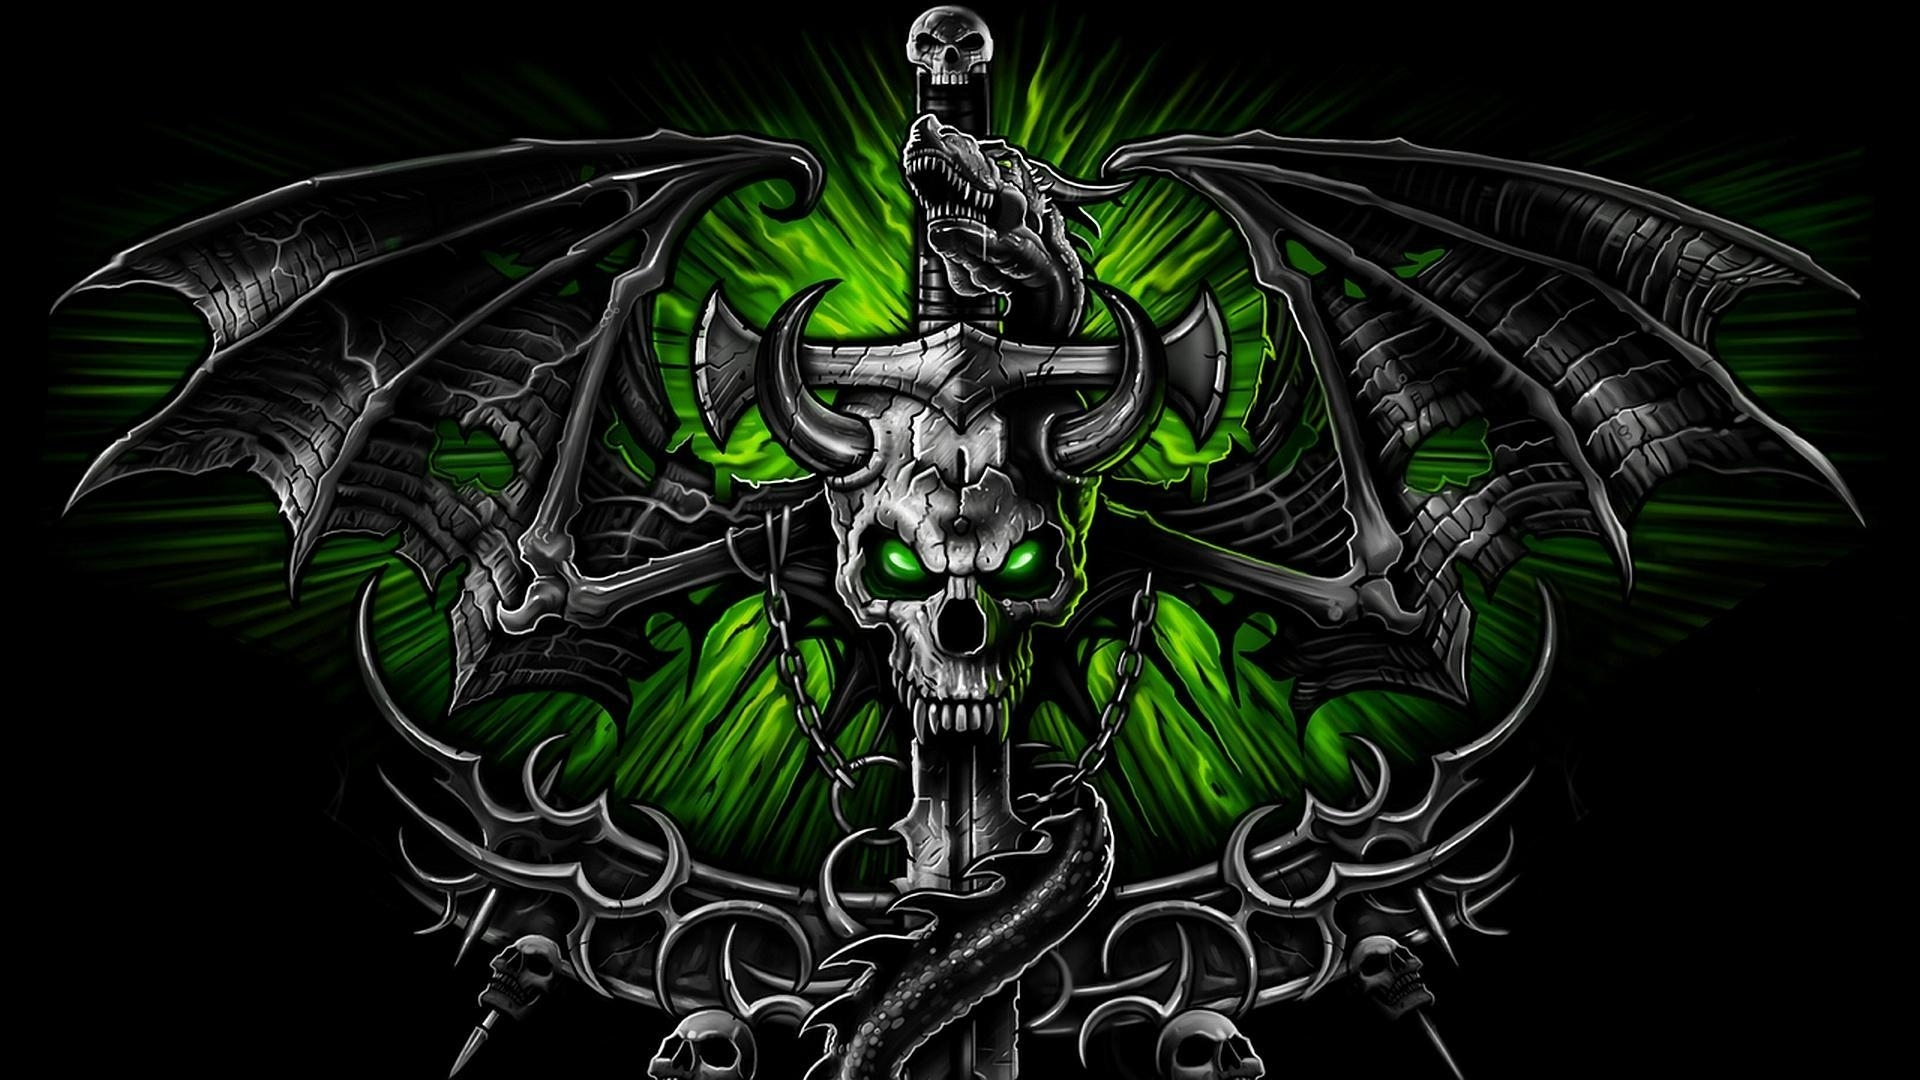 10 Latest Free Skull Wallpaper Download Full Hd 19201080 For Pc